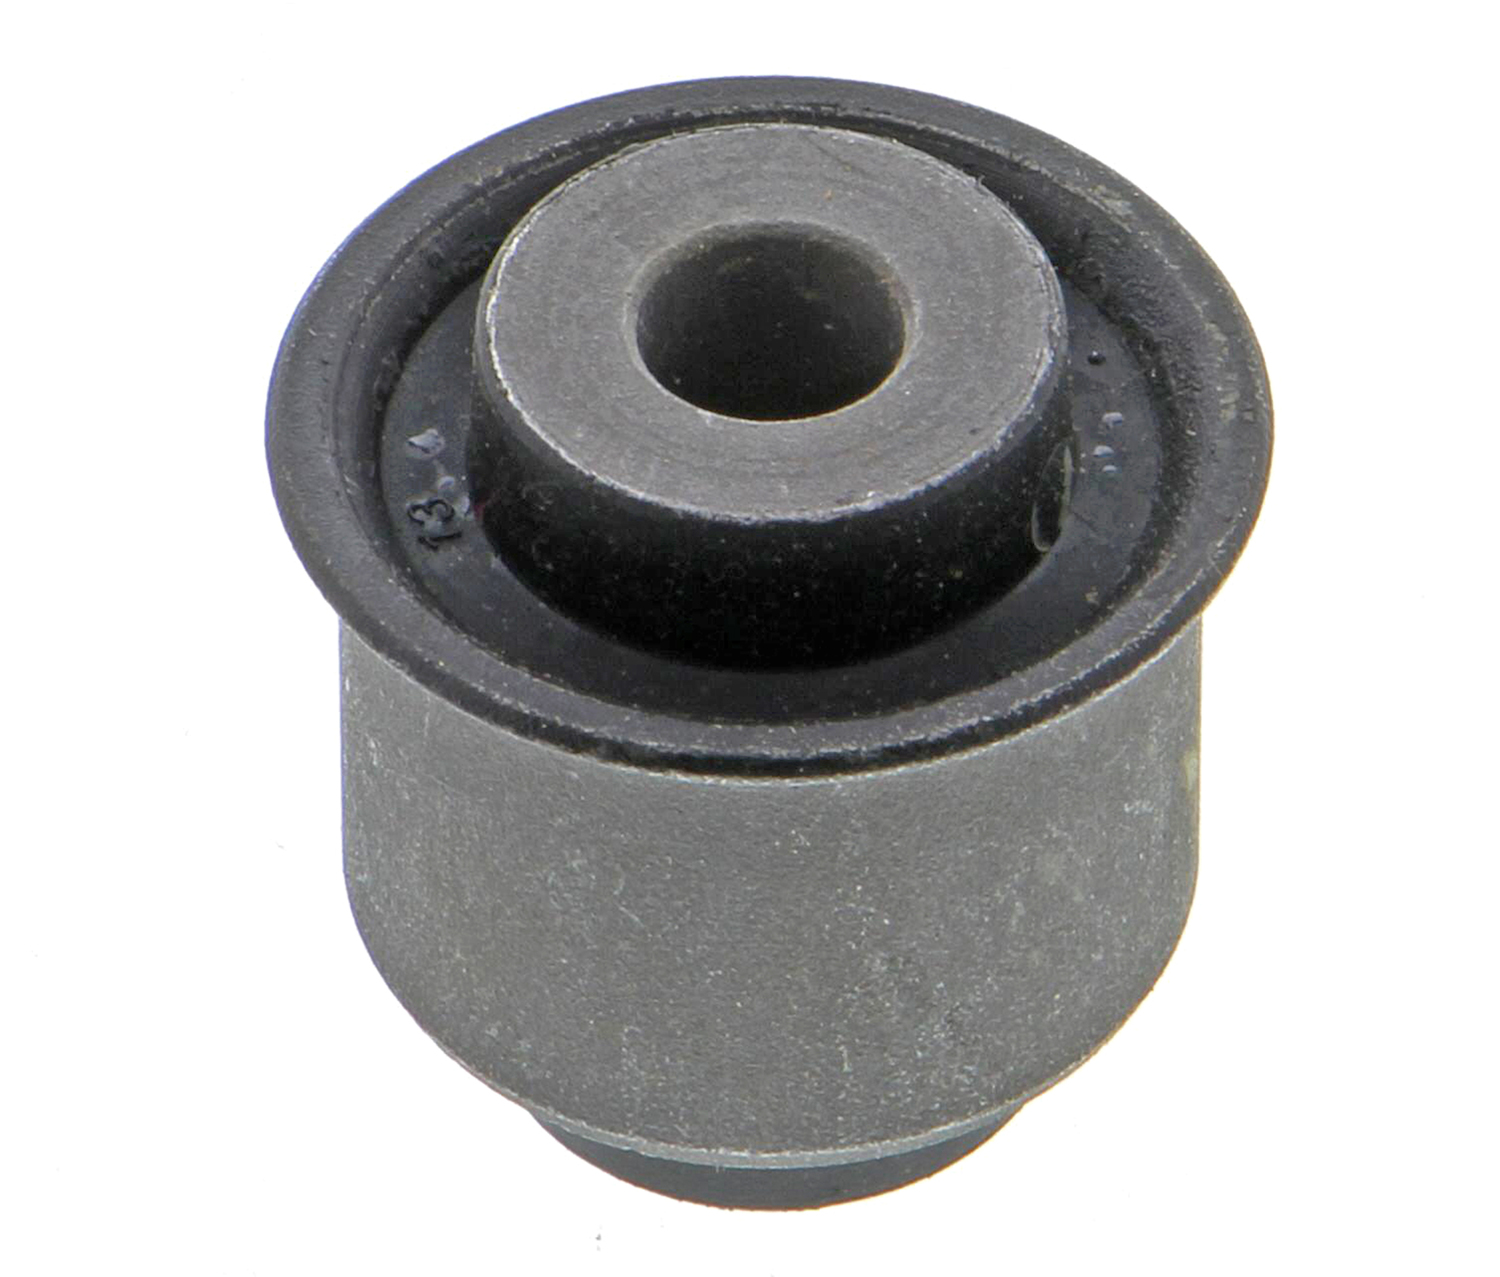 Suspension Knuckle Bushing